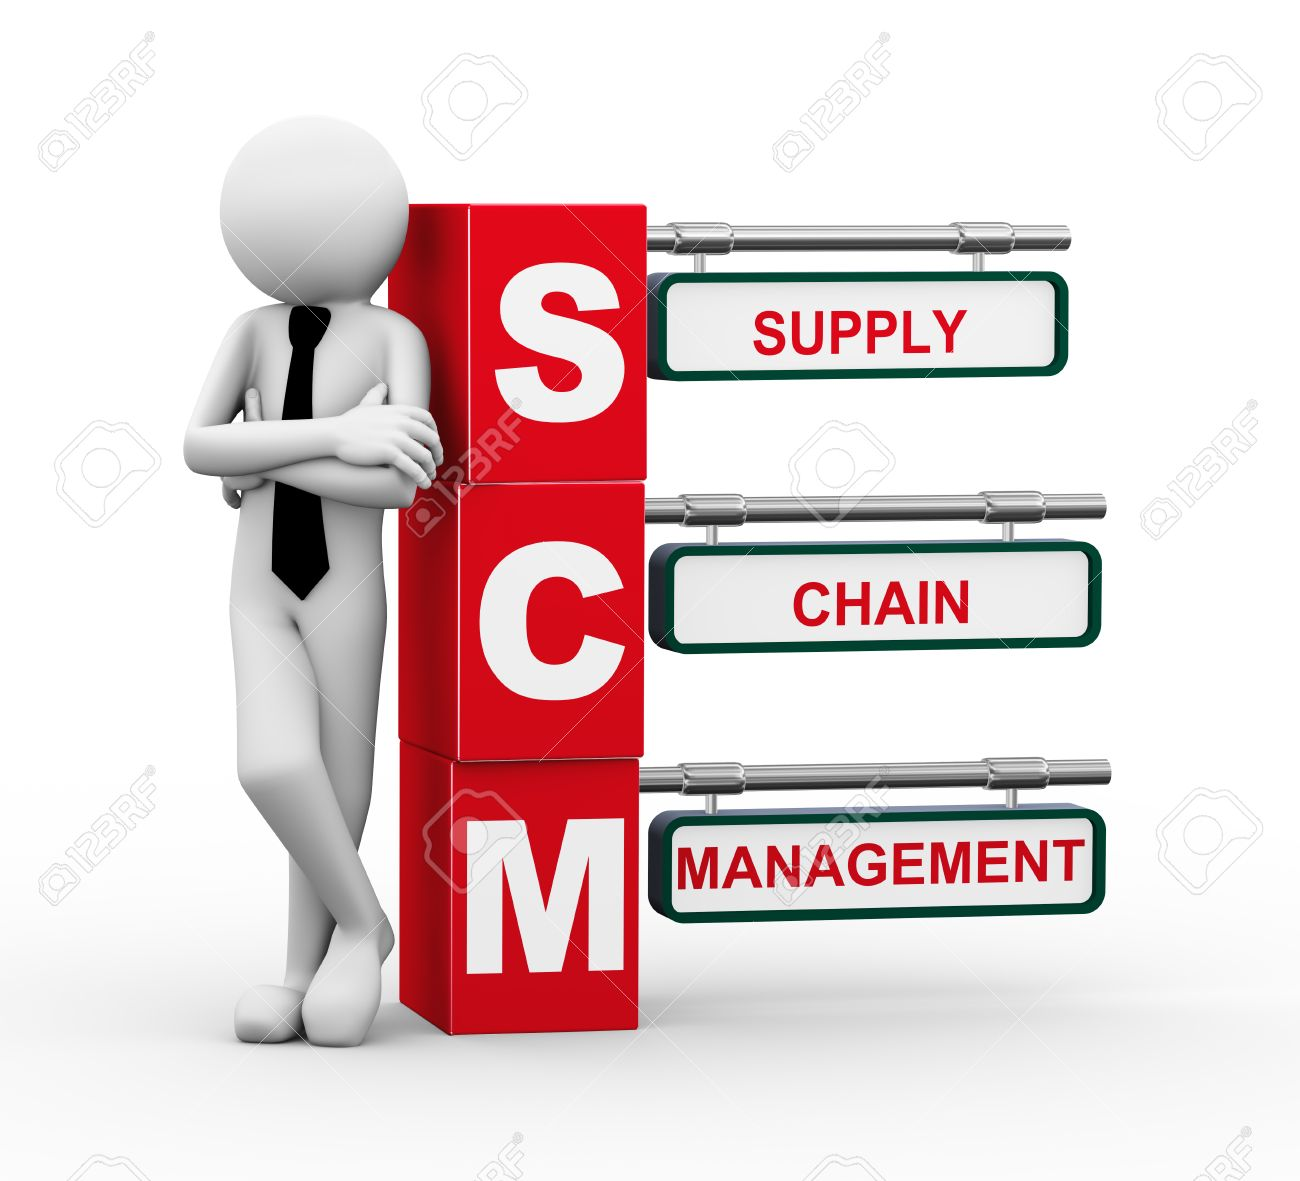 3d Rendering Of Business Person Standing With Scm - Supply Chain ...